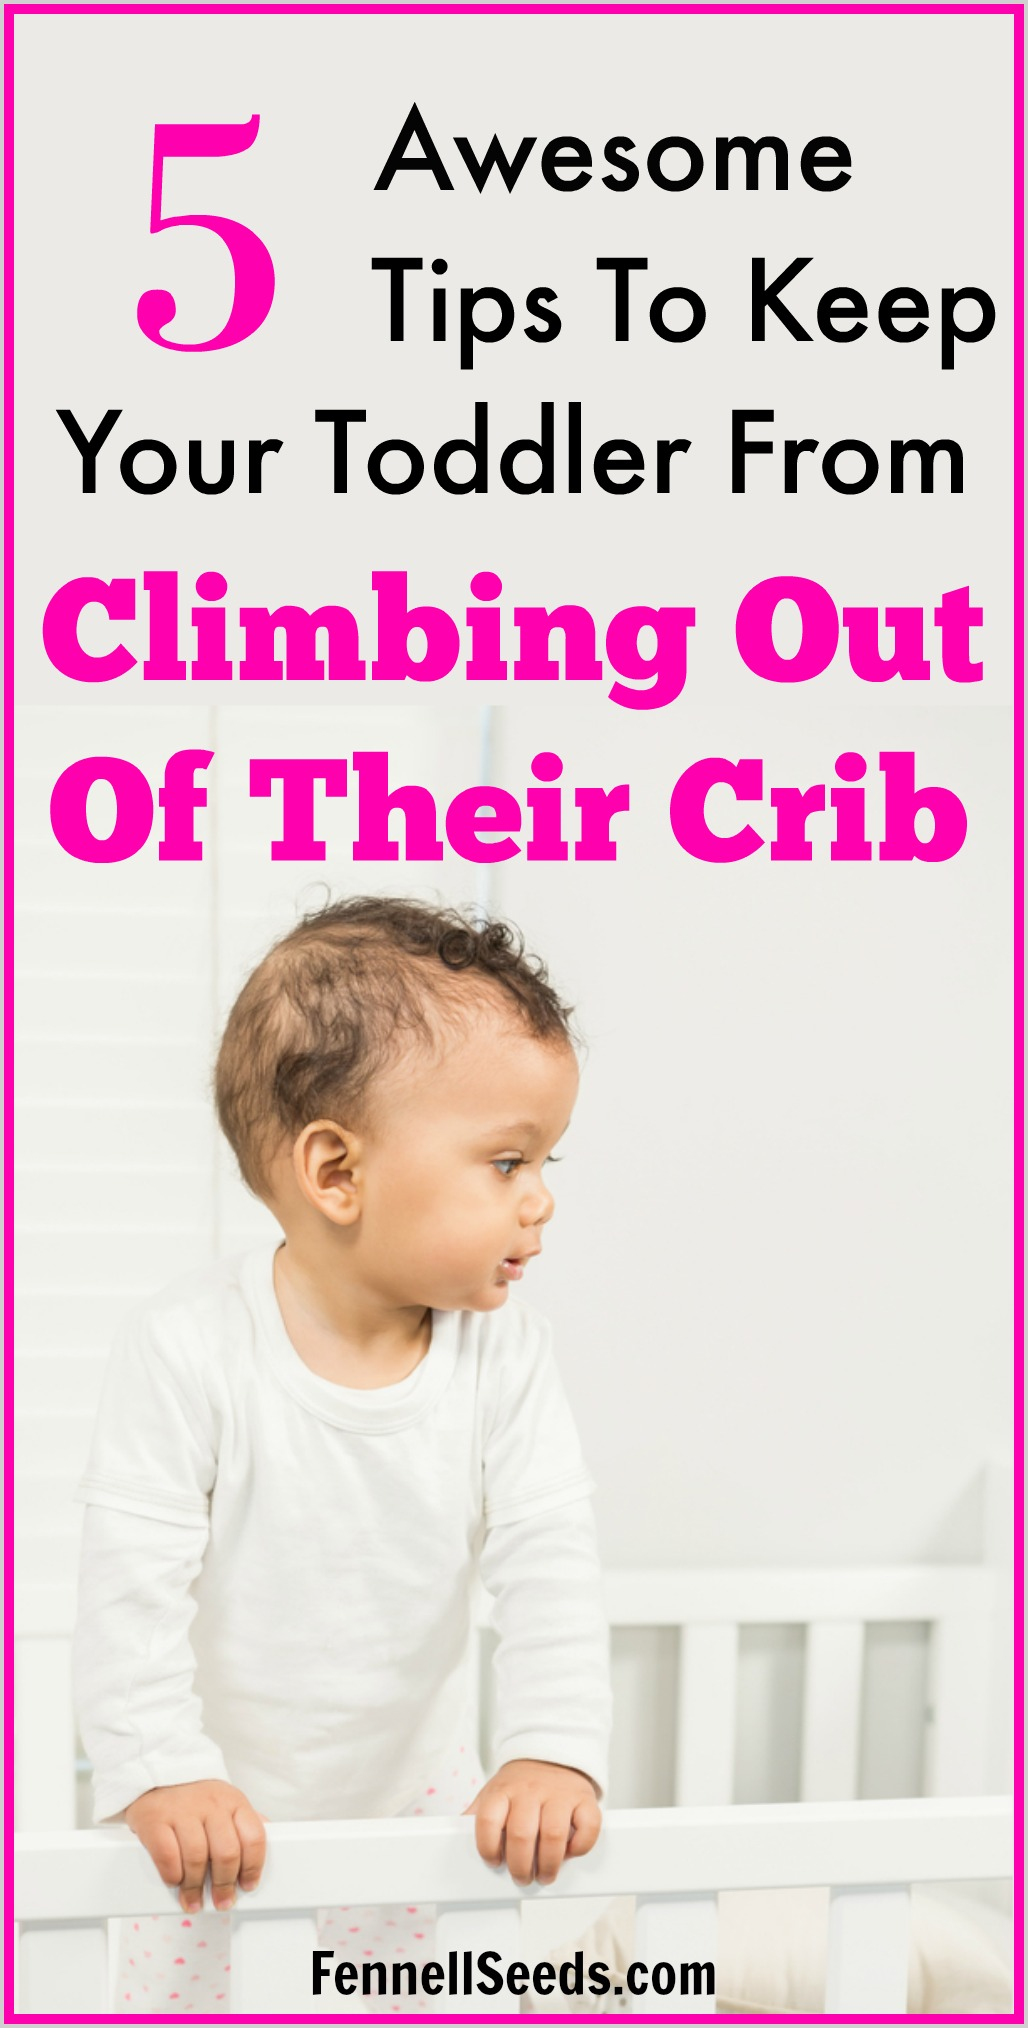 baby climbing out of crib | what to do when toddler climbs out of crib | how to keep baby from climbing out of crib | how to keep toddler from climbing out of crib | how to keep toddler in crib